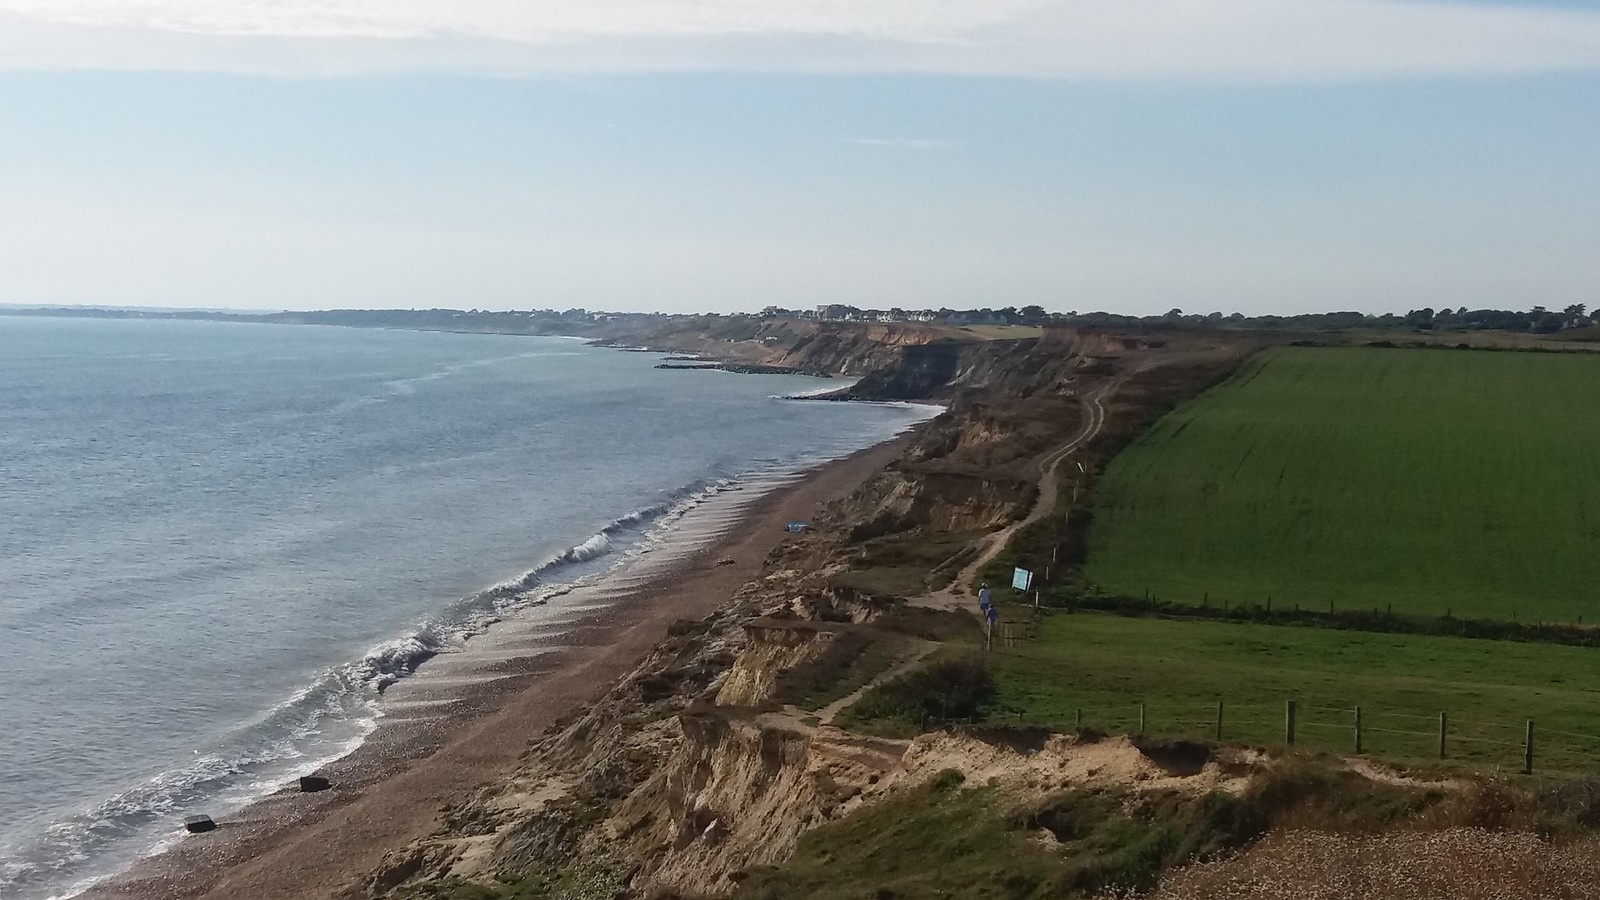 20160907_161617 Almost inaccessable beach east of Barton on Sea